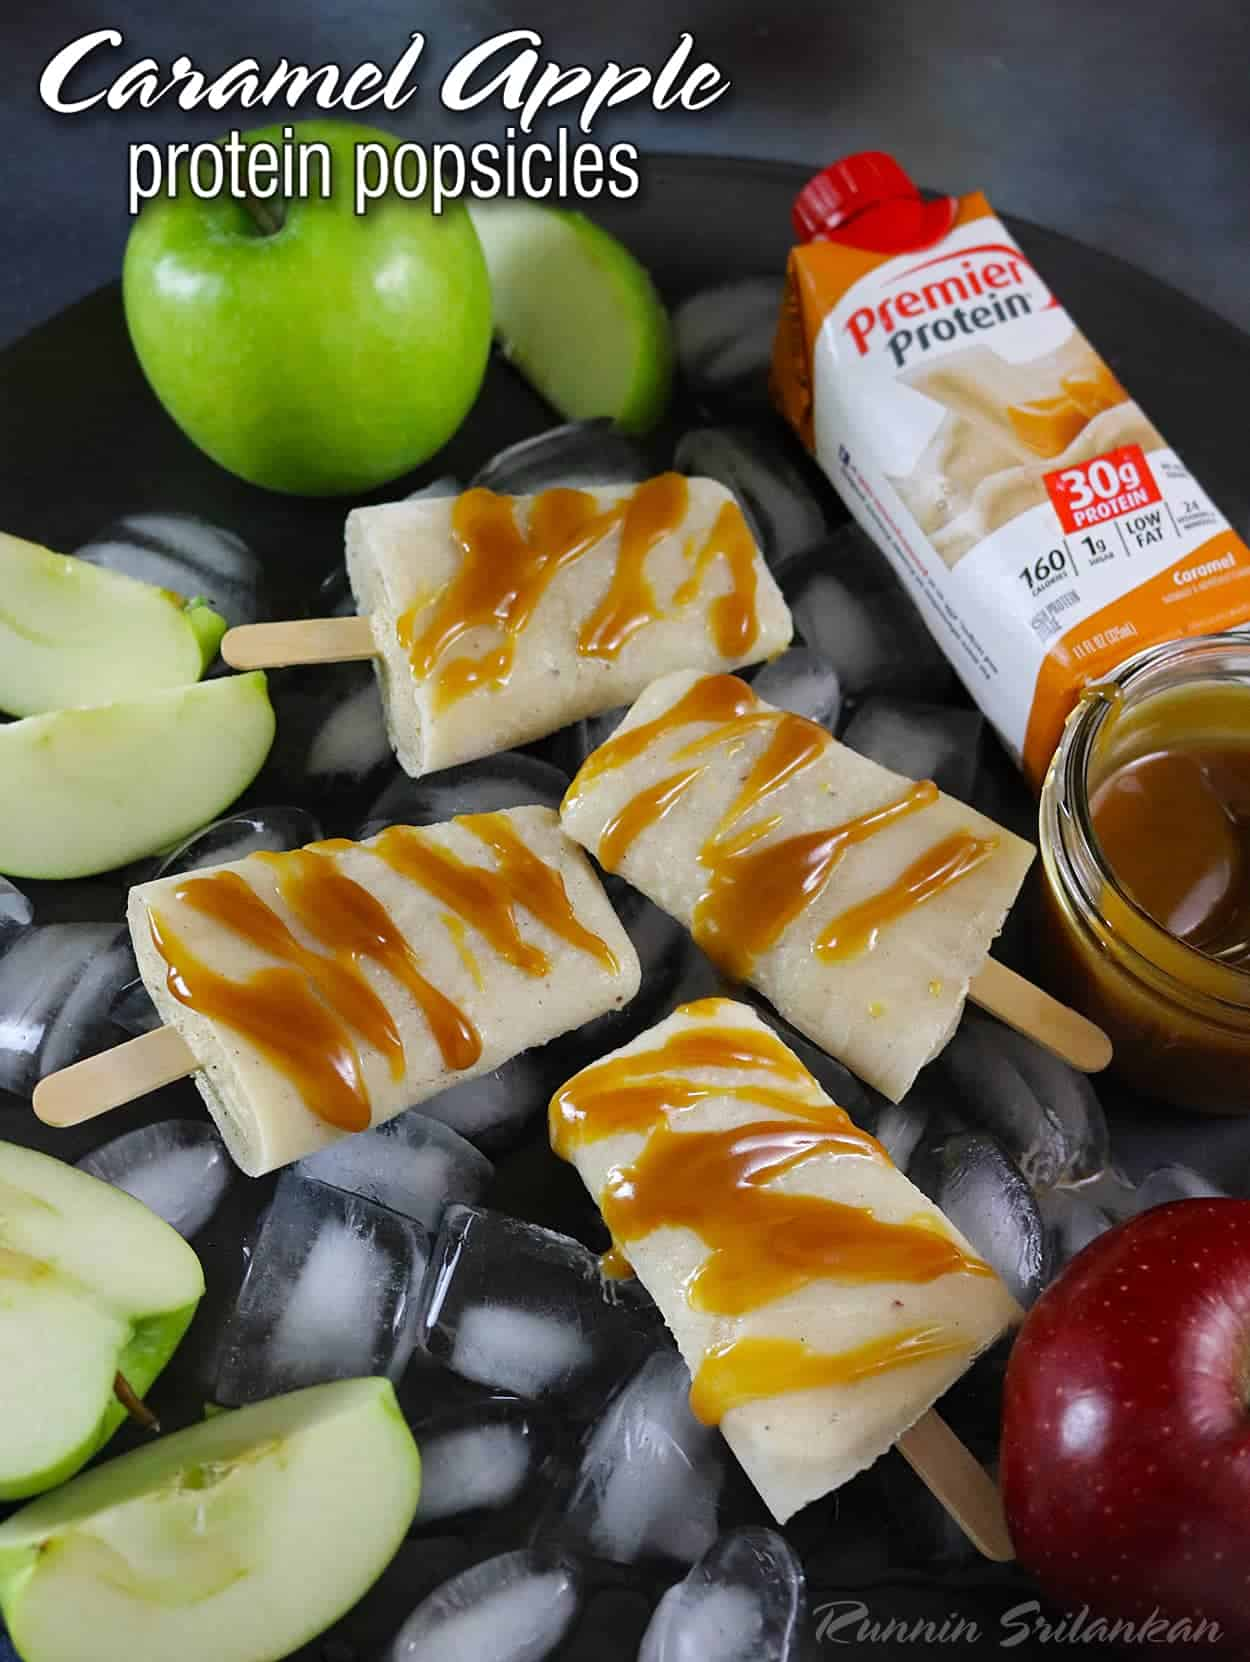 Caramel Apple Protein Popsicles - 3 ingredients and healthy too!